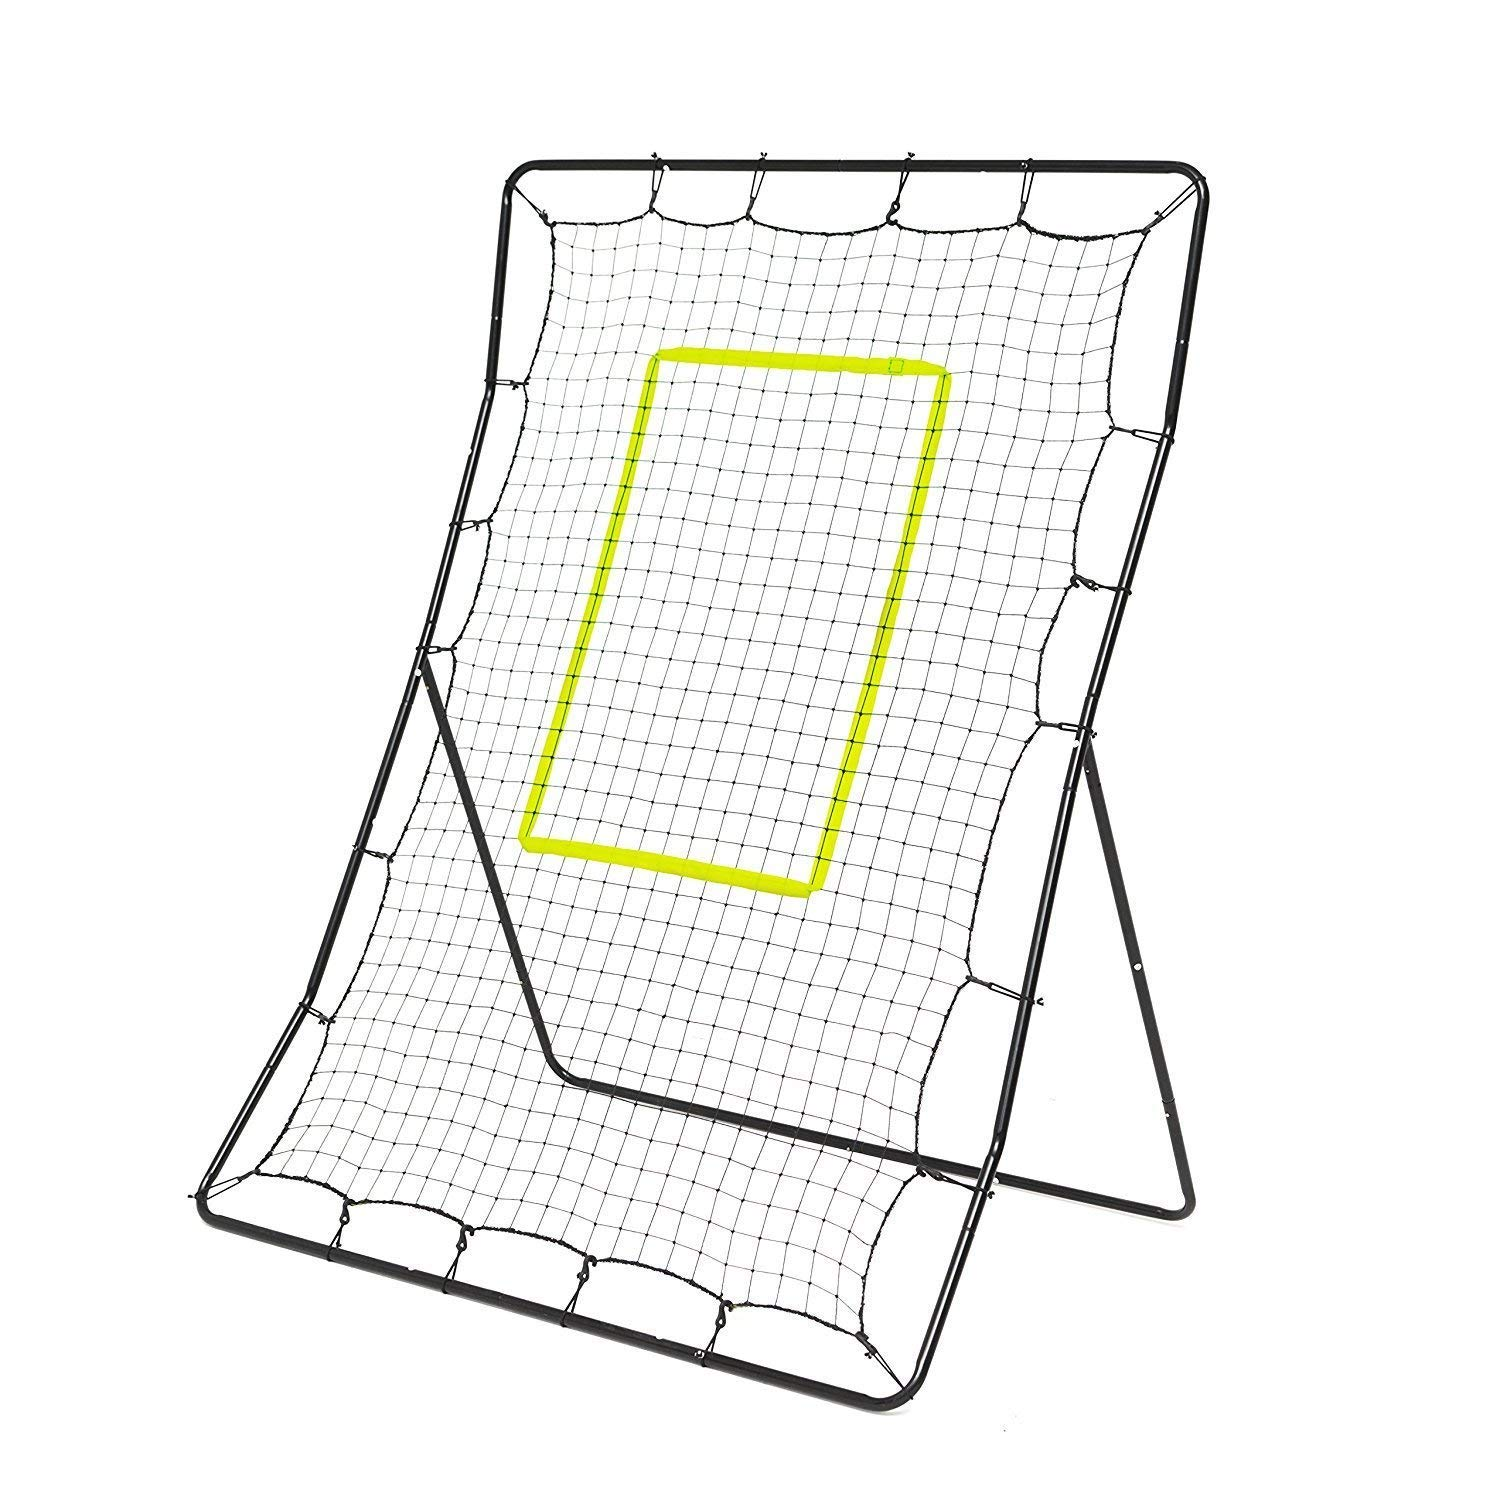 Powerfly Baseball Trainer - Practice Pitchback Net for Pitching Hitting Batting Throwing - 68x48in Youth Multi-Angle Ball Return Rebounder - Softball Pitch Back Training Equipment with Strike Zone by Powerfly